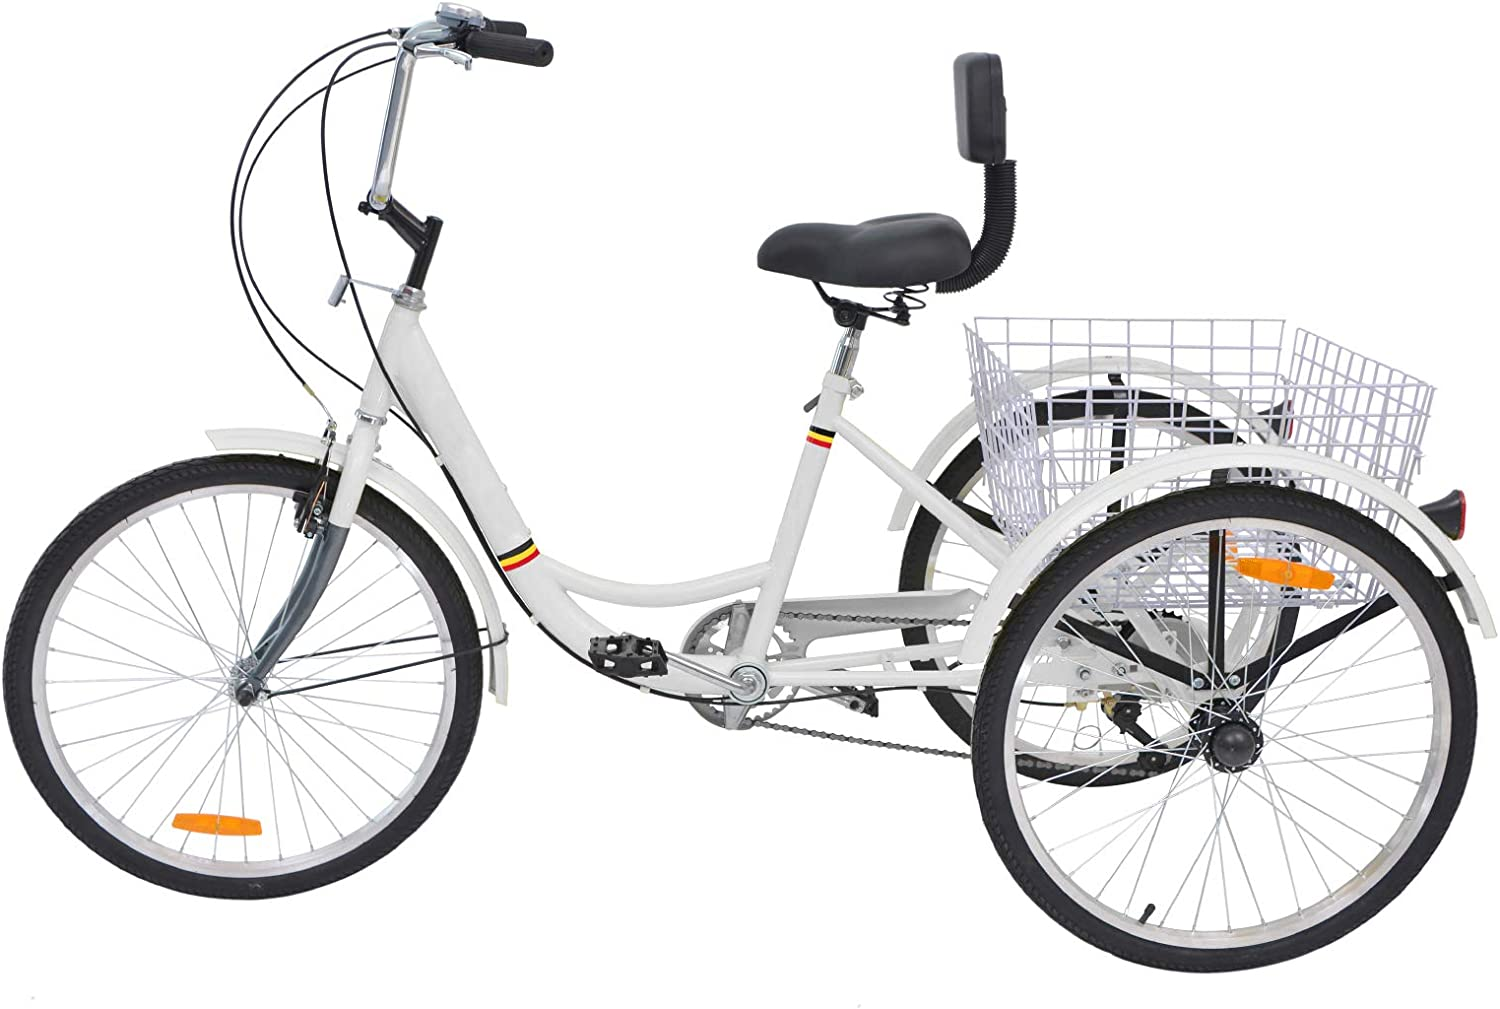 H ZT Adult Tricycle Trike 3 Wheeled Cruiser Bike with Large Basket and Maintenance Tools, 24 Inch Wheel Size Bike Trike, Men s Women s Cruiser Bike